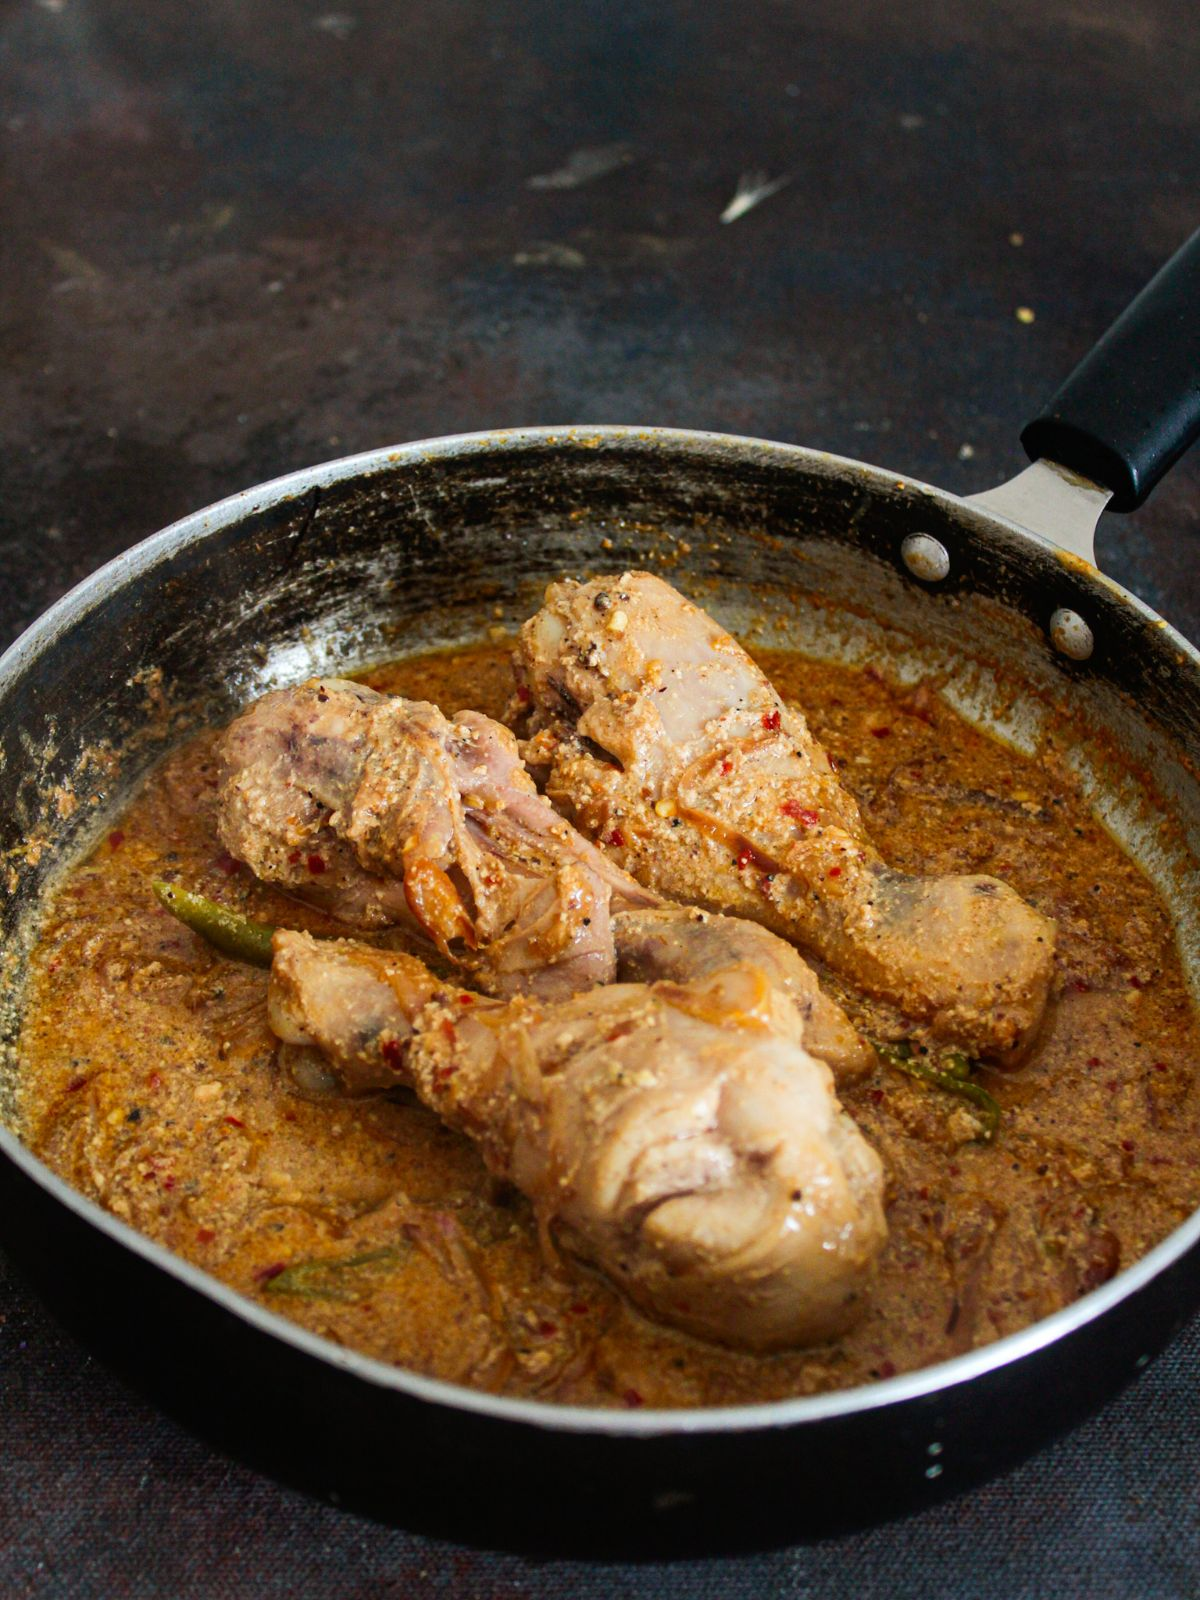 skillet with cooked chicken legs in sauce